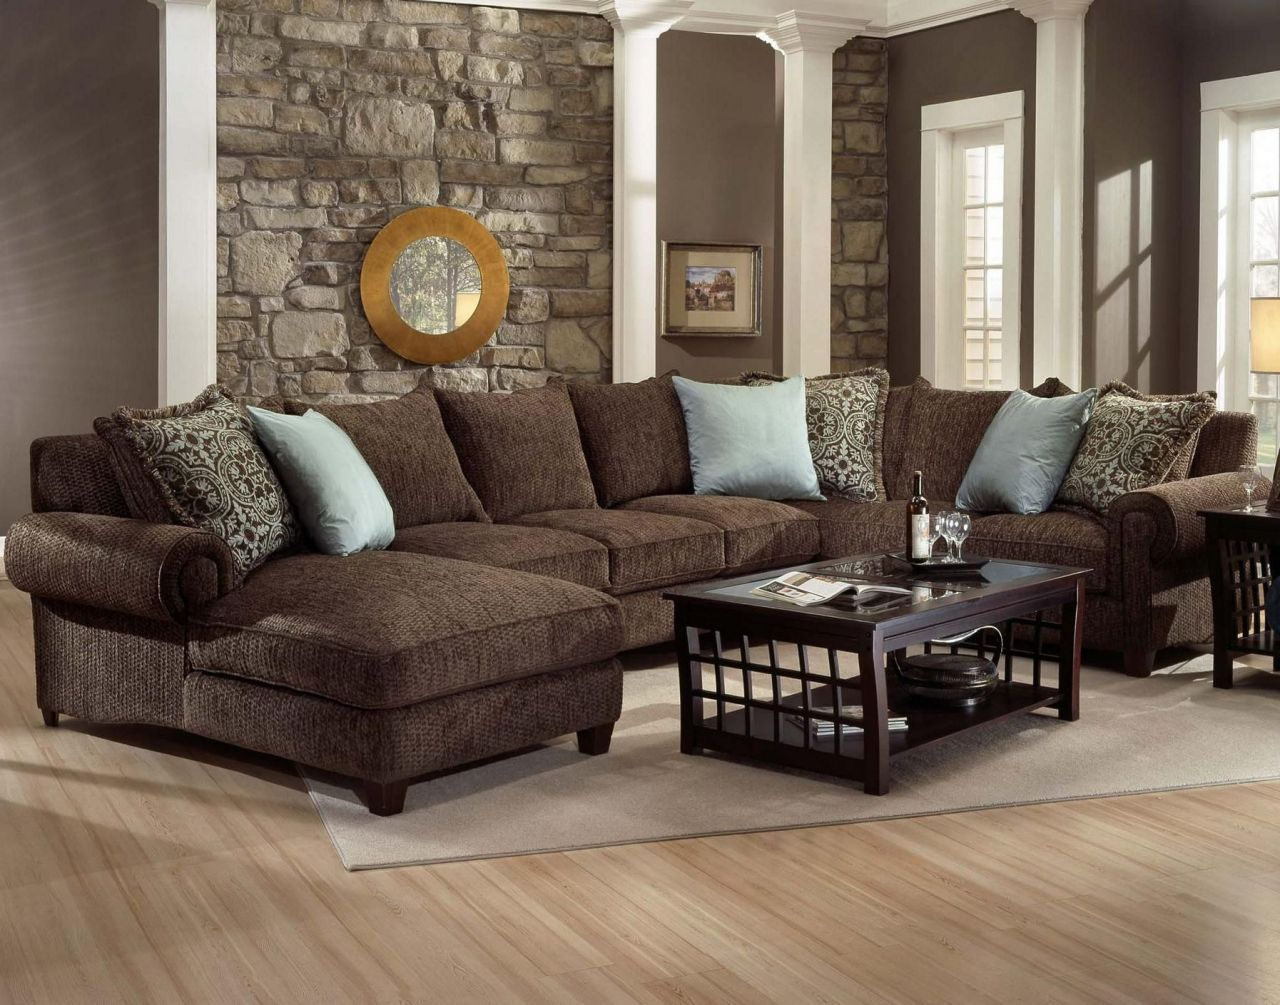 Living room colors with brown couch ideas 31 (With images ...